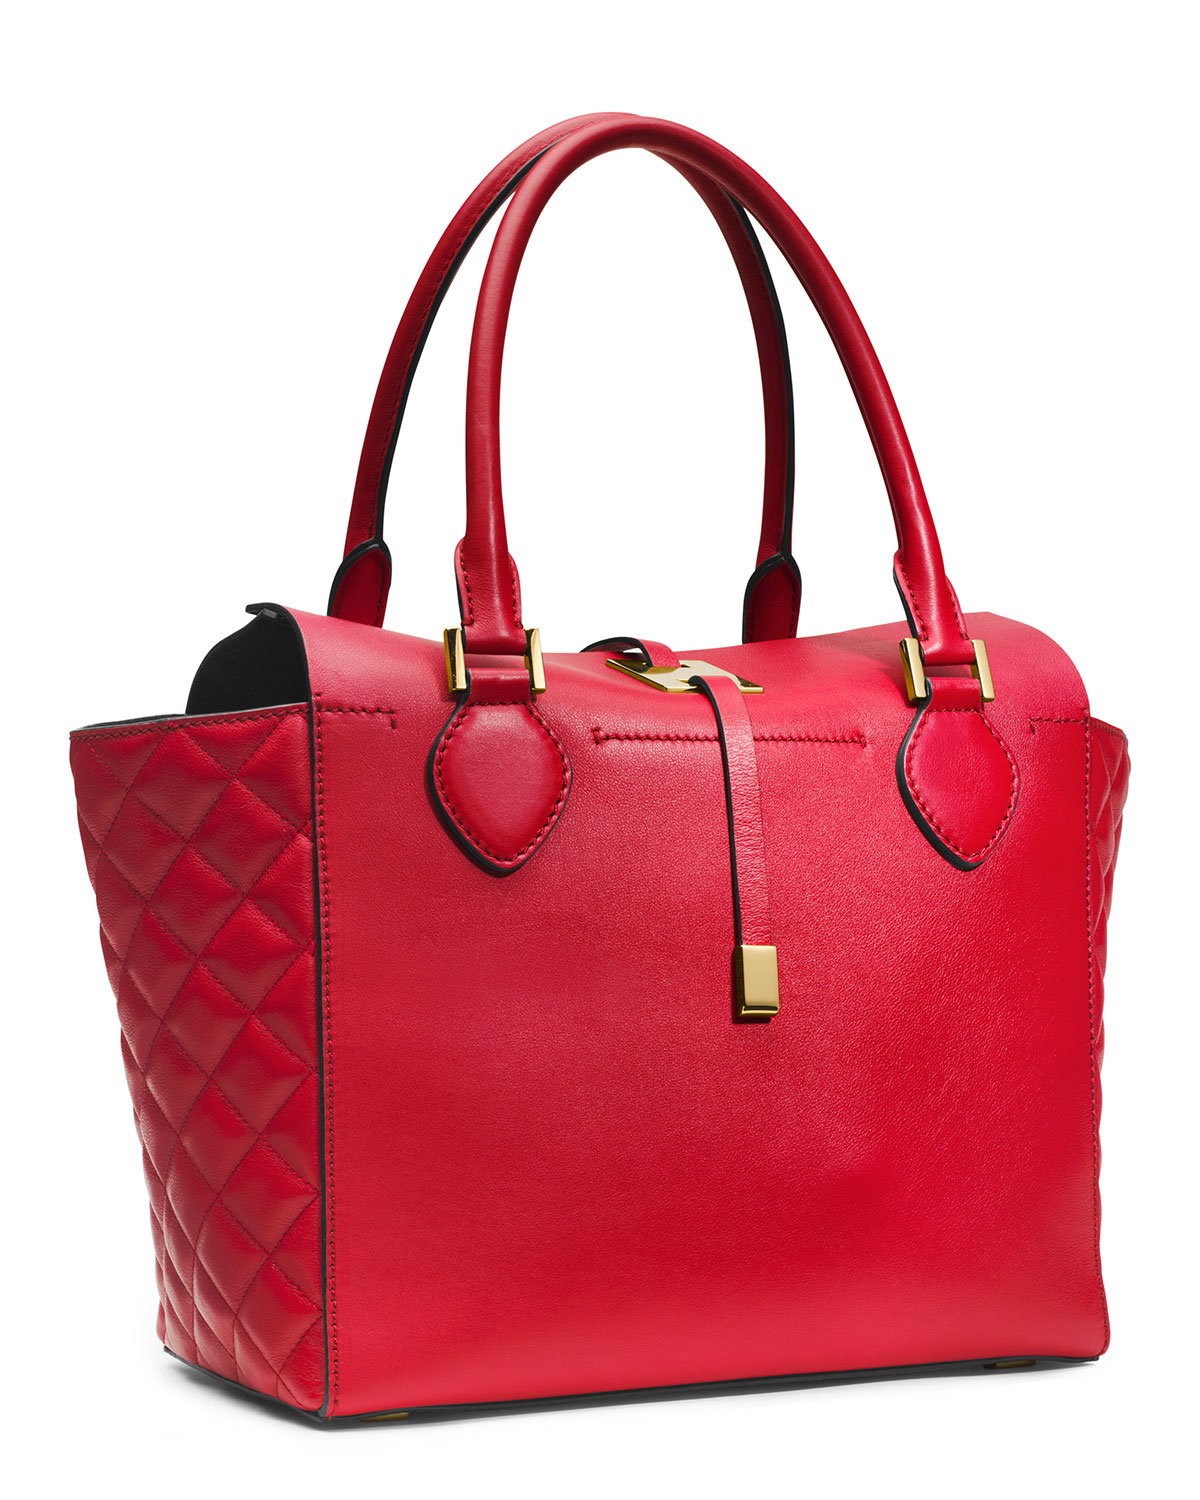 ... Michael kors Miranda Quilted Tote in Red Lyst 06b4ce31a5